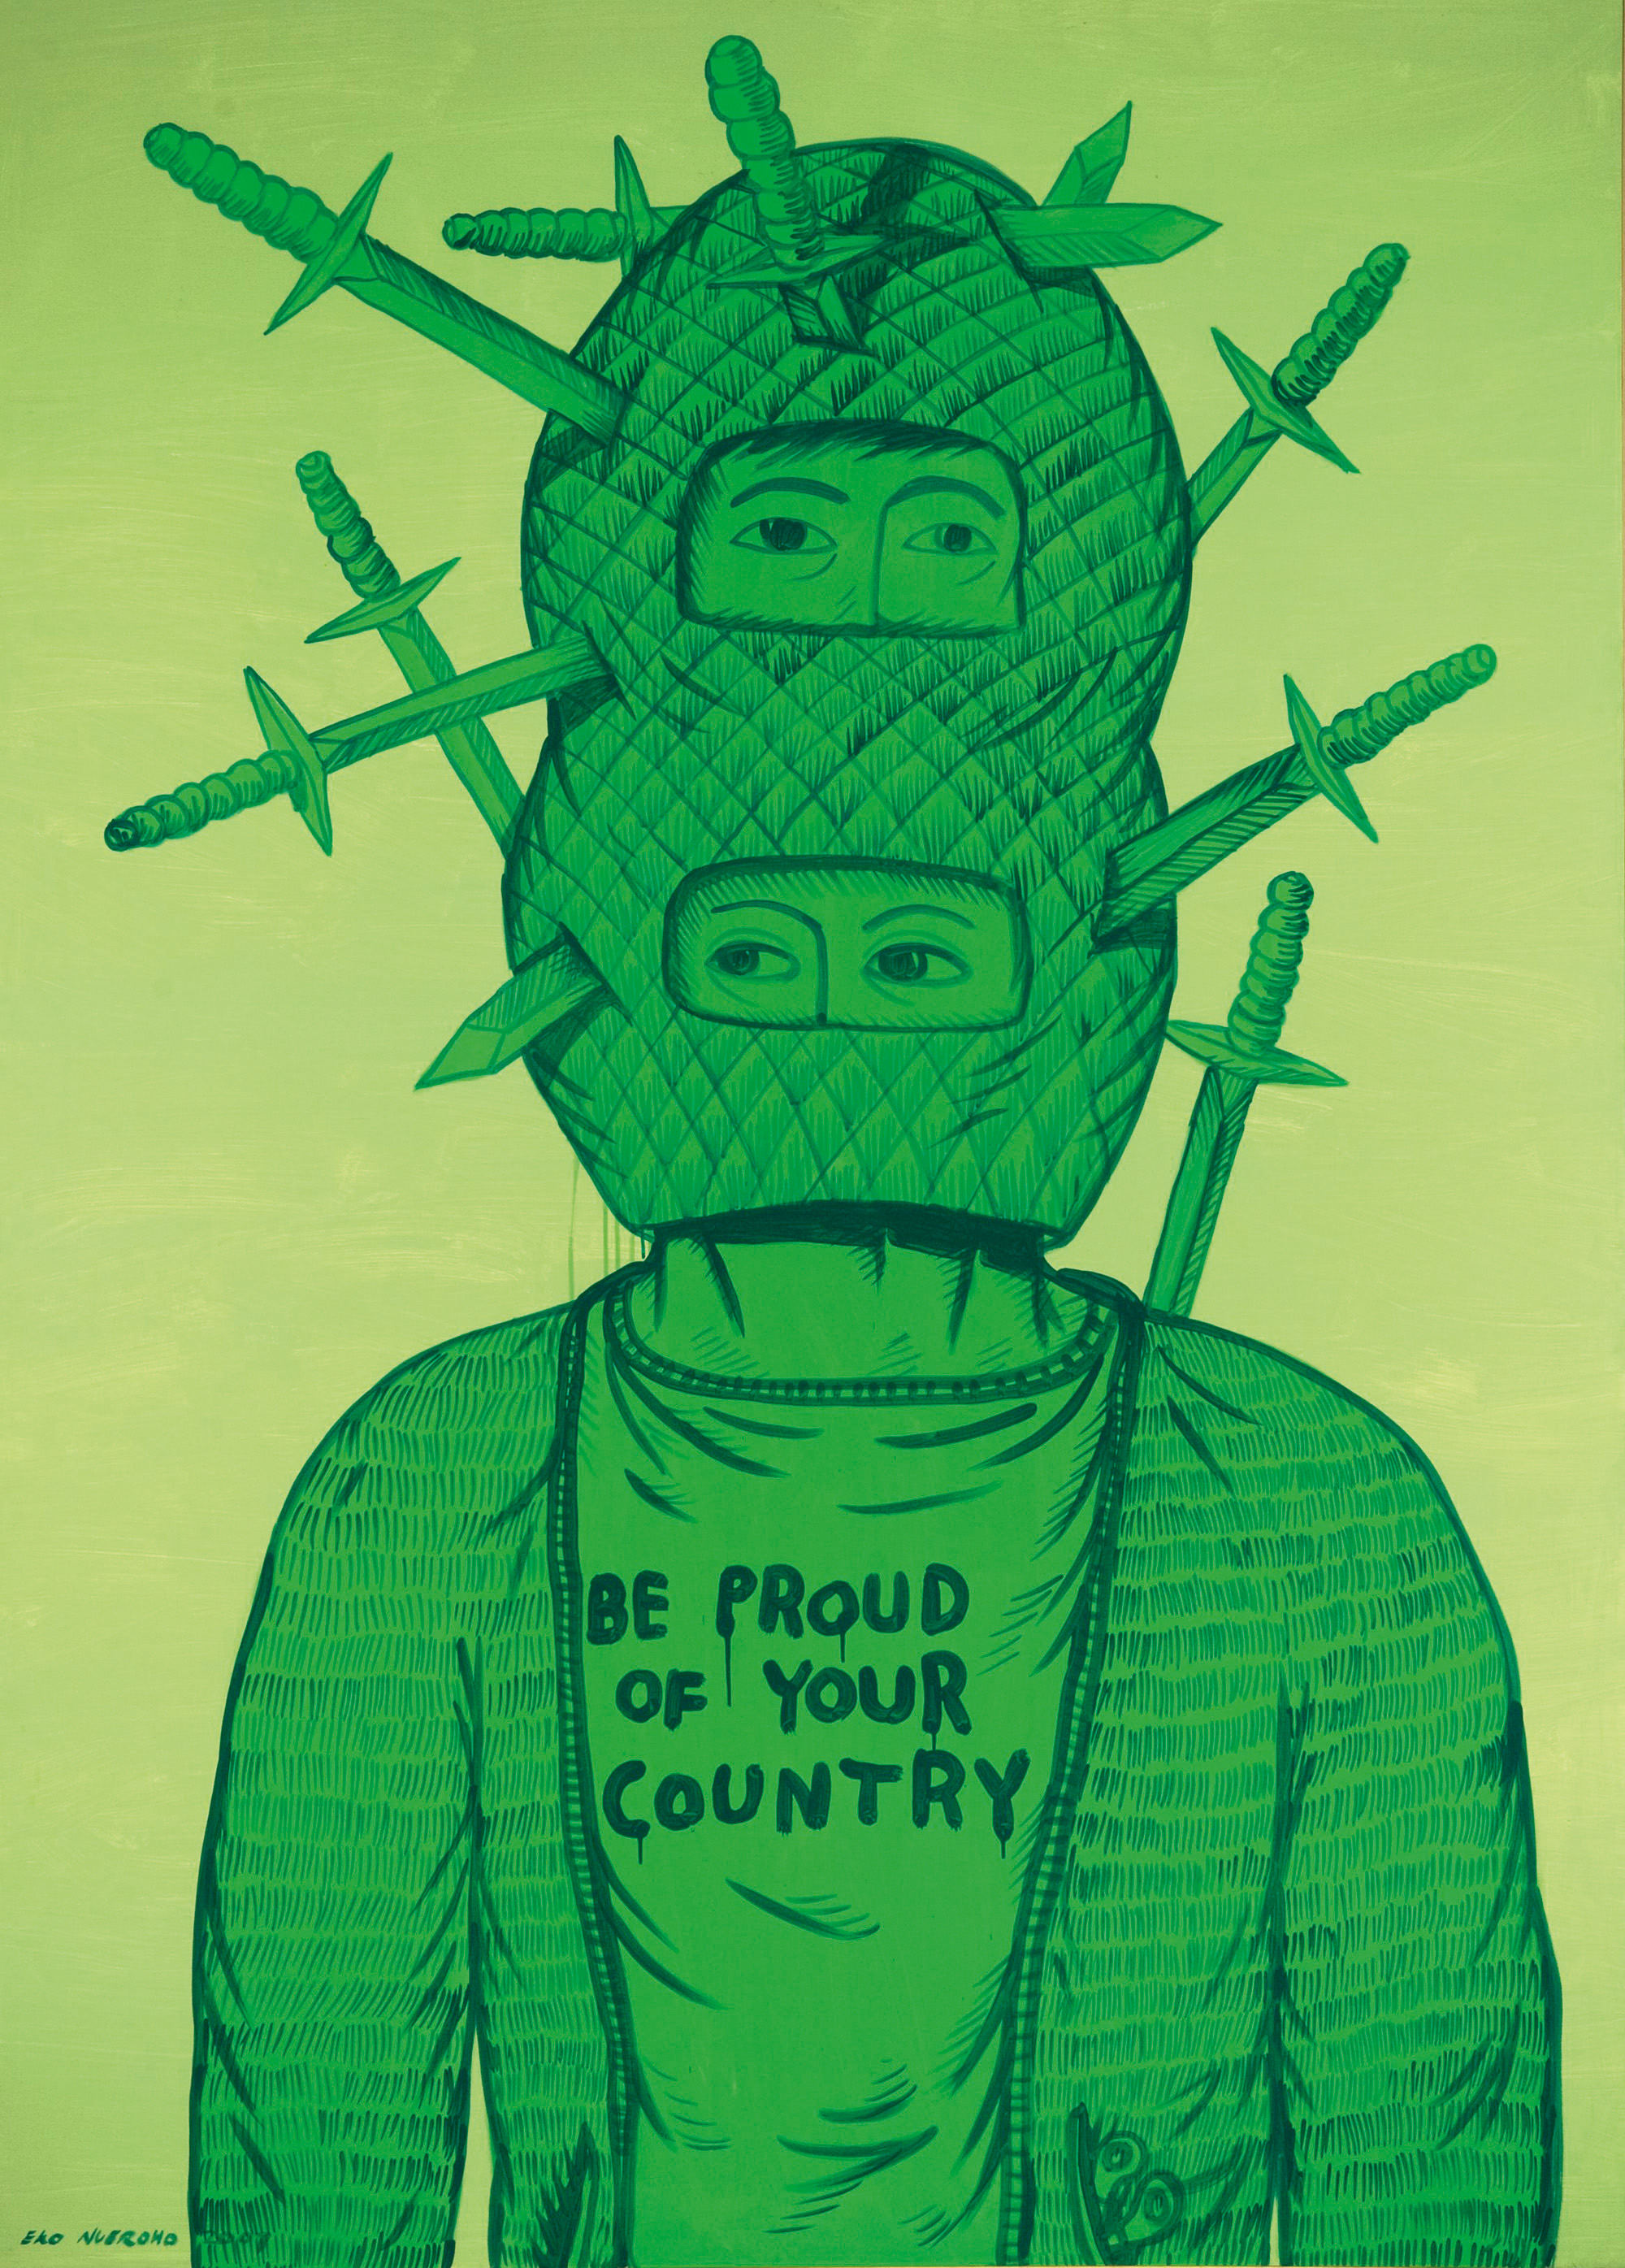 Be proud of your country